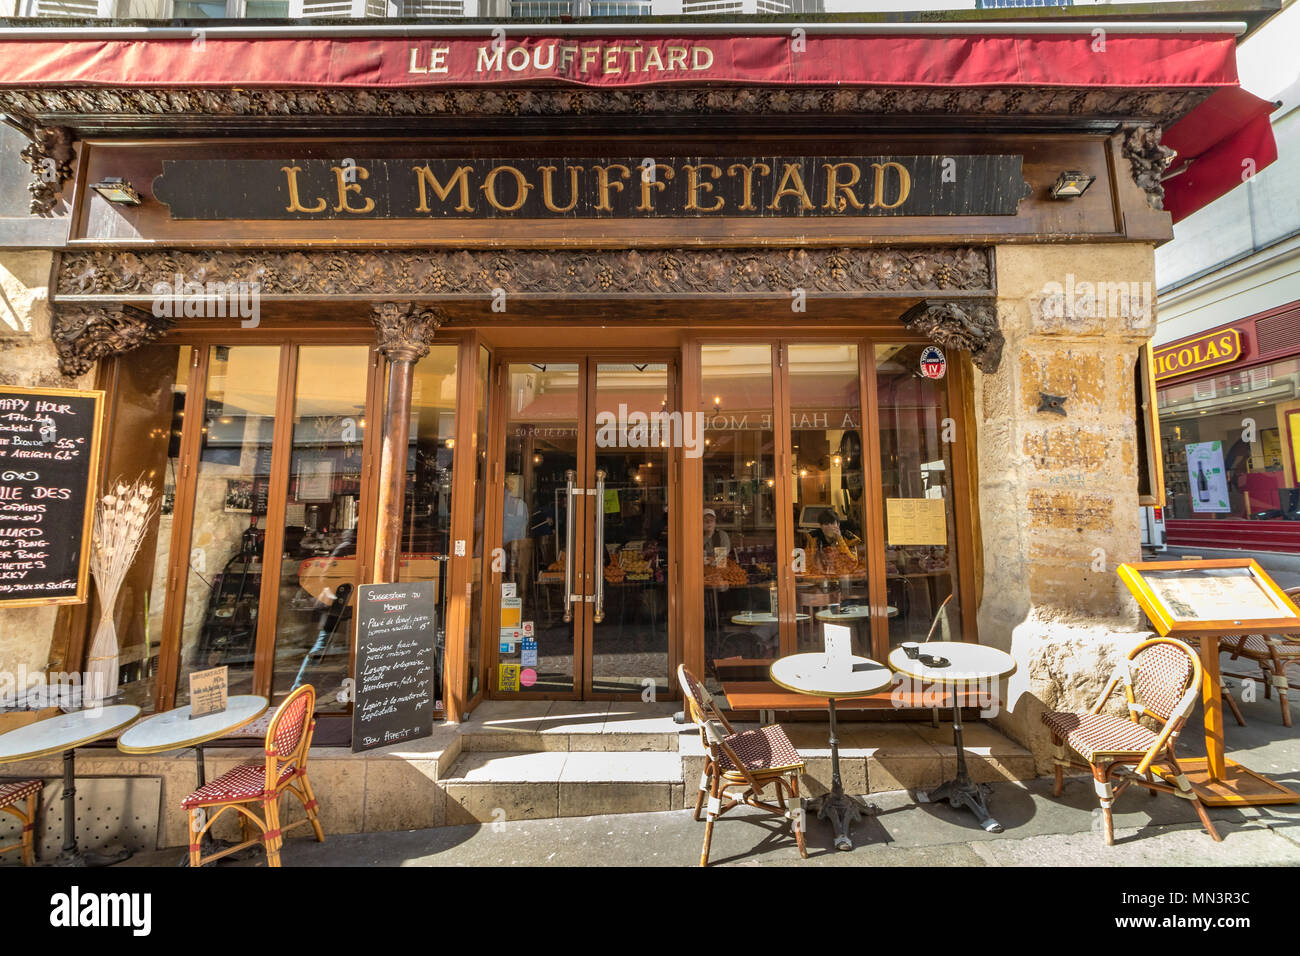 paris cafe terrasse stock photos paris cafe terrasse stock images alamy. Black Bedroom Furniture Sets. Home Design Ideas